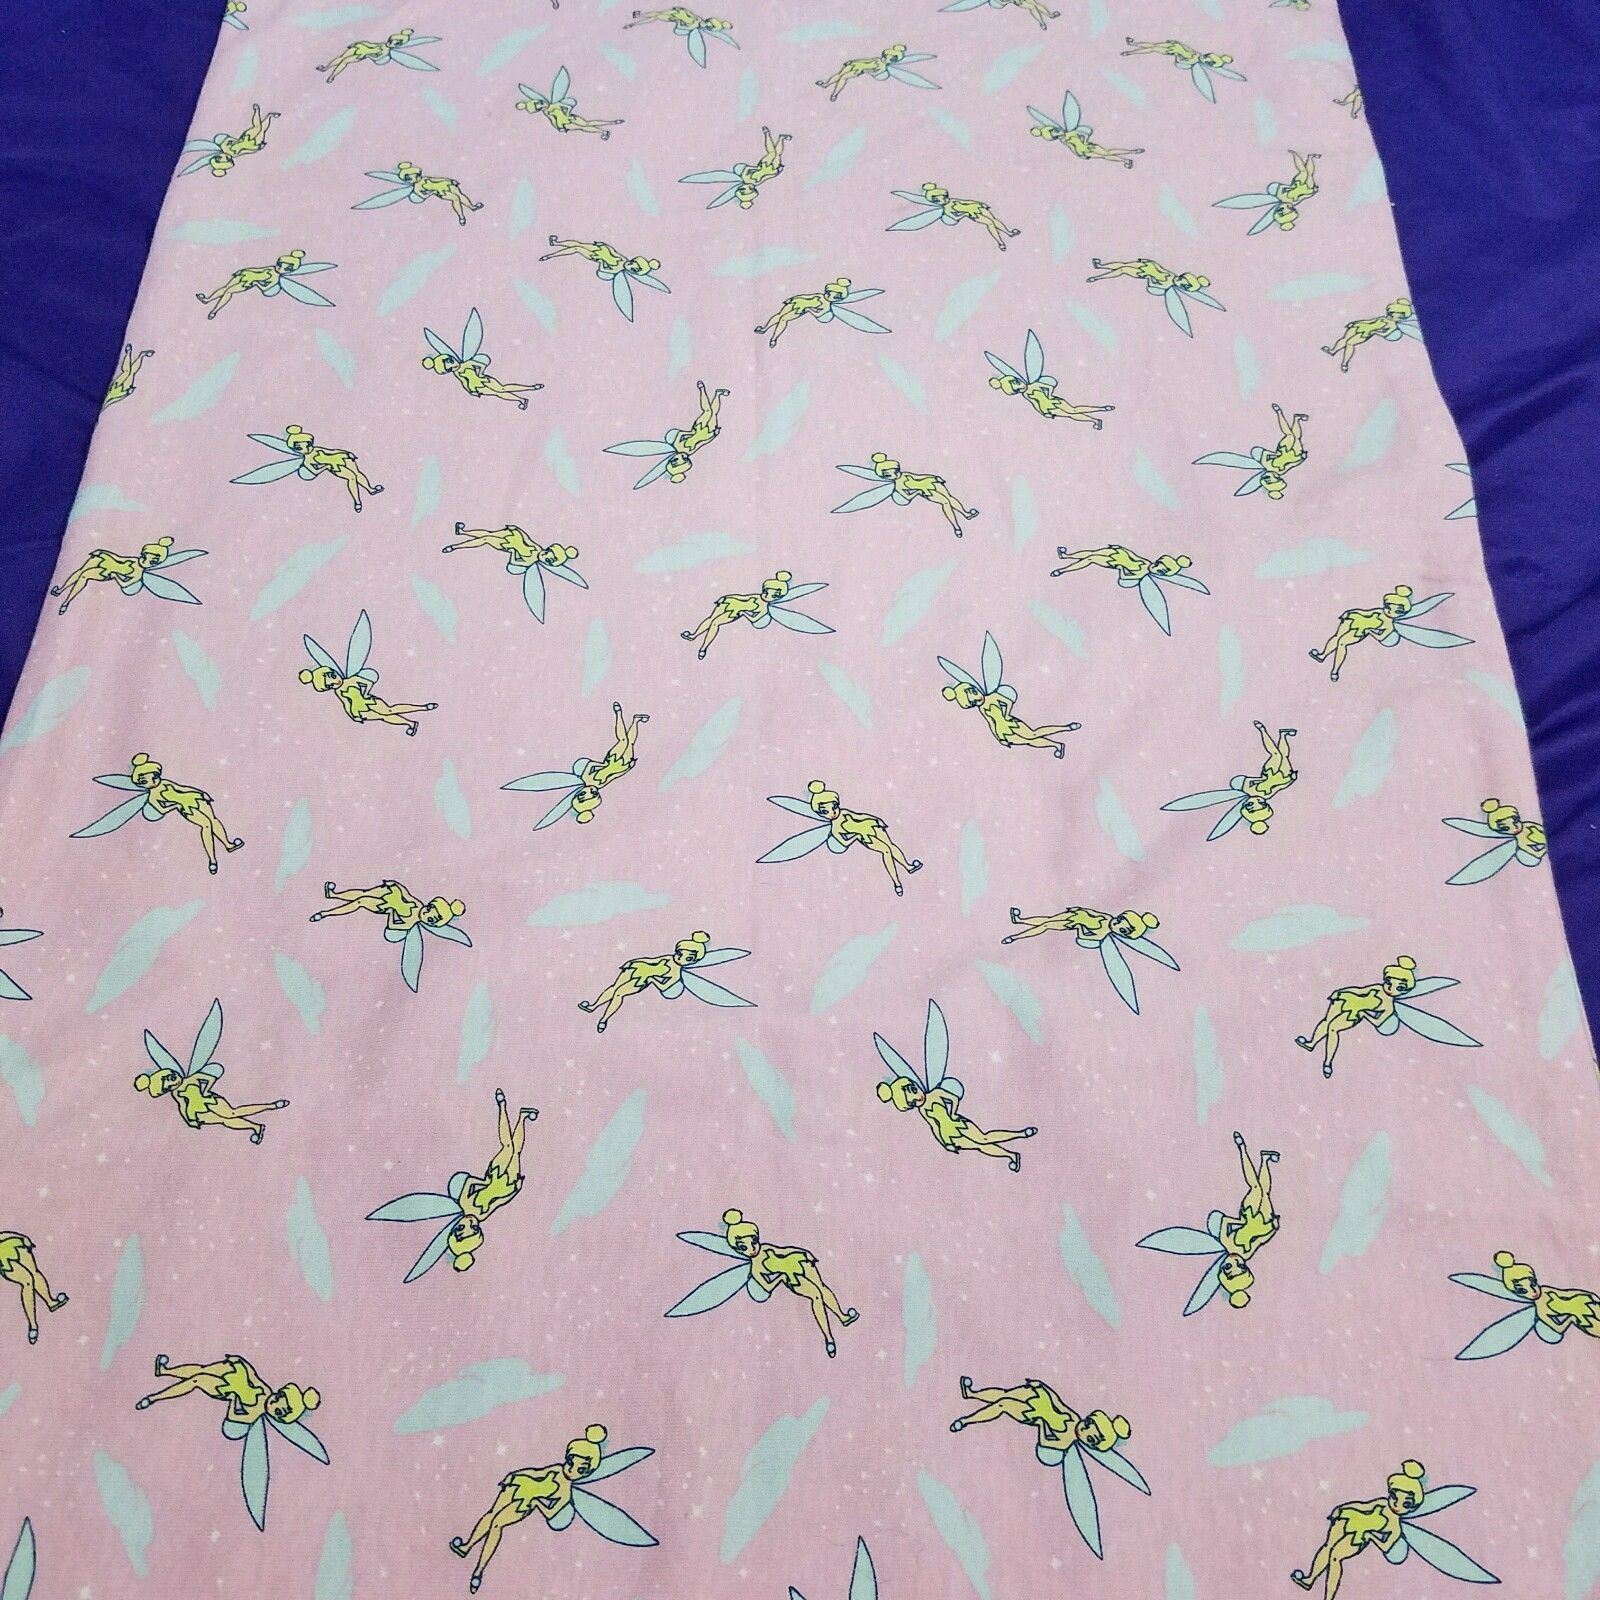 VTG Tinkerbell Pink Pillow Case Little Tinkerbell Flying In Clouds 29 x 18